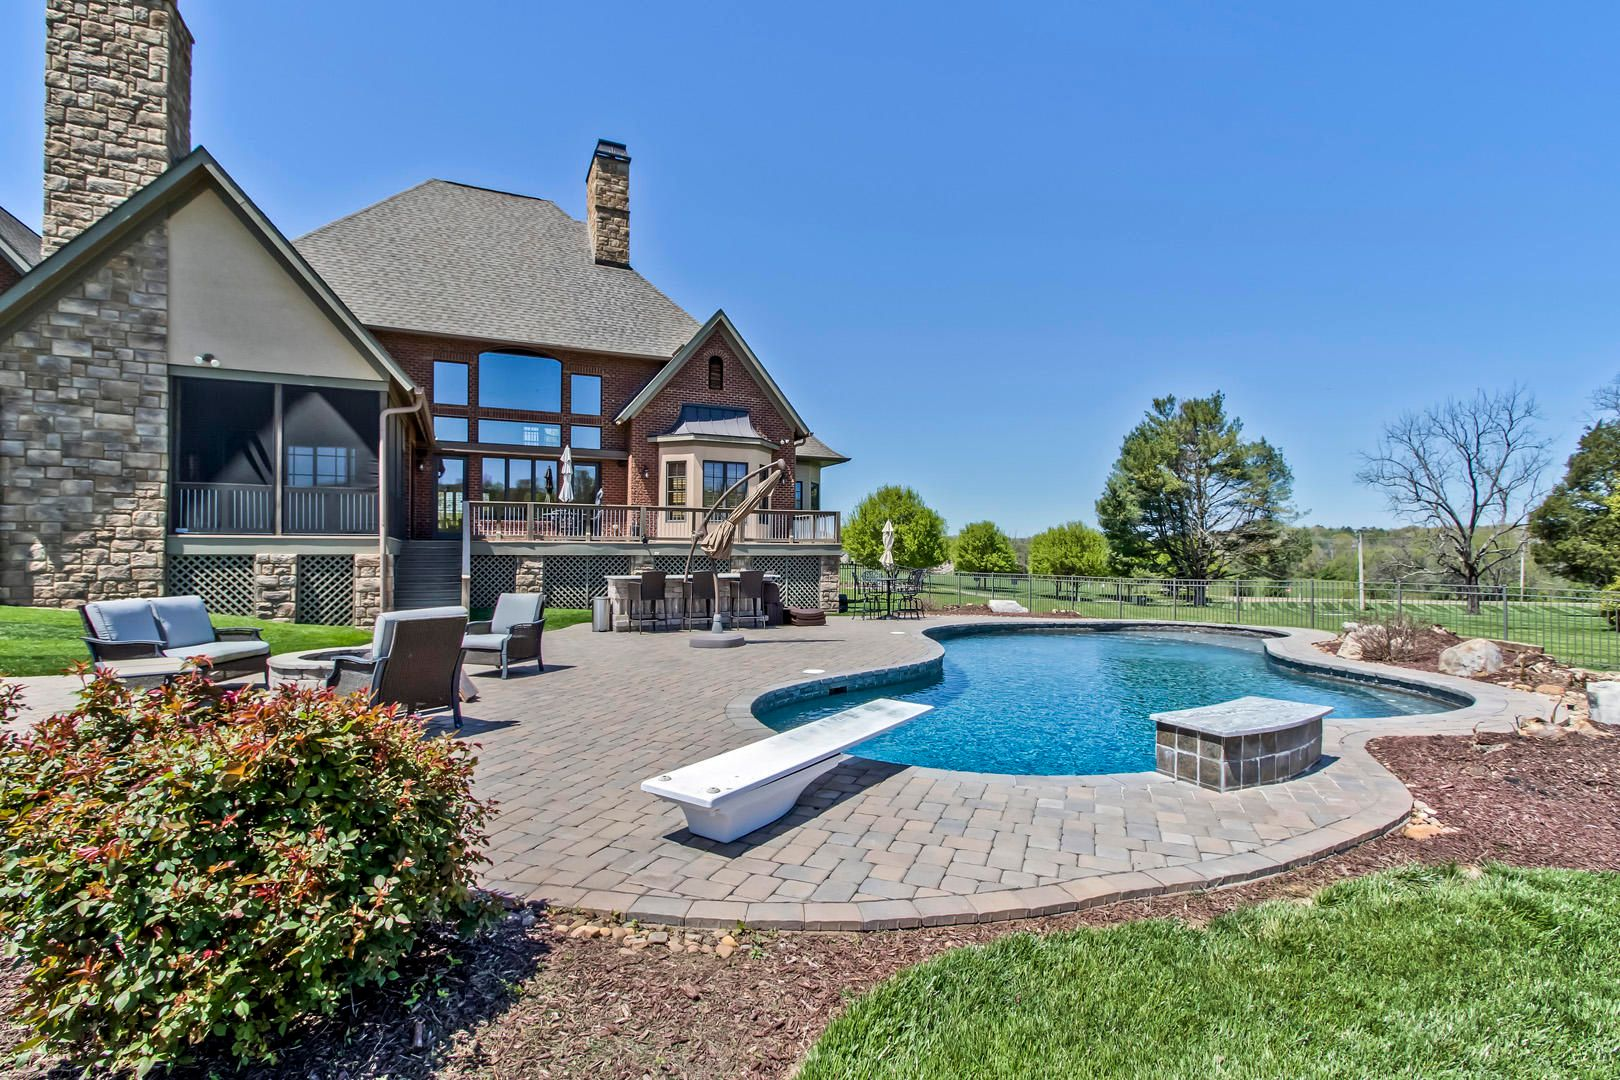 36_BridgemoreBlvd_12520_Patio-Pool02